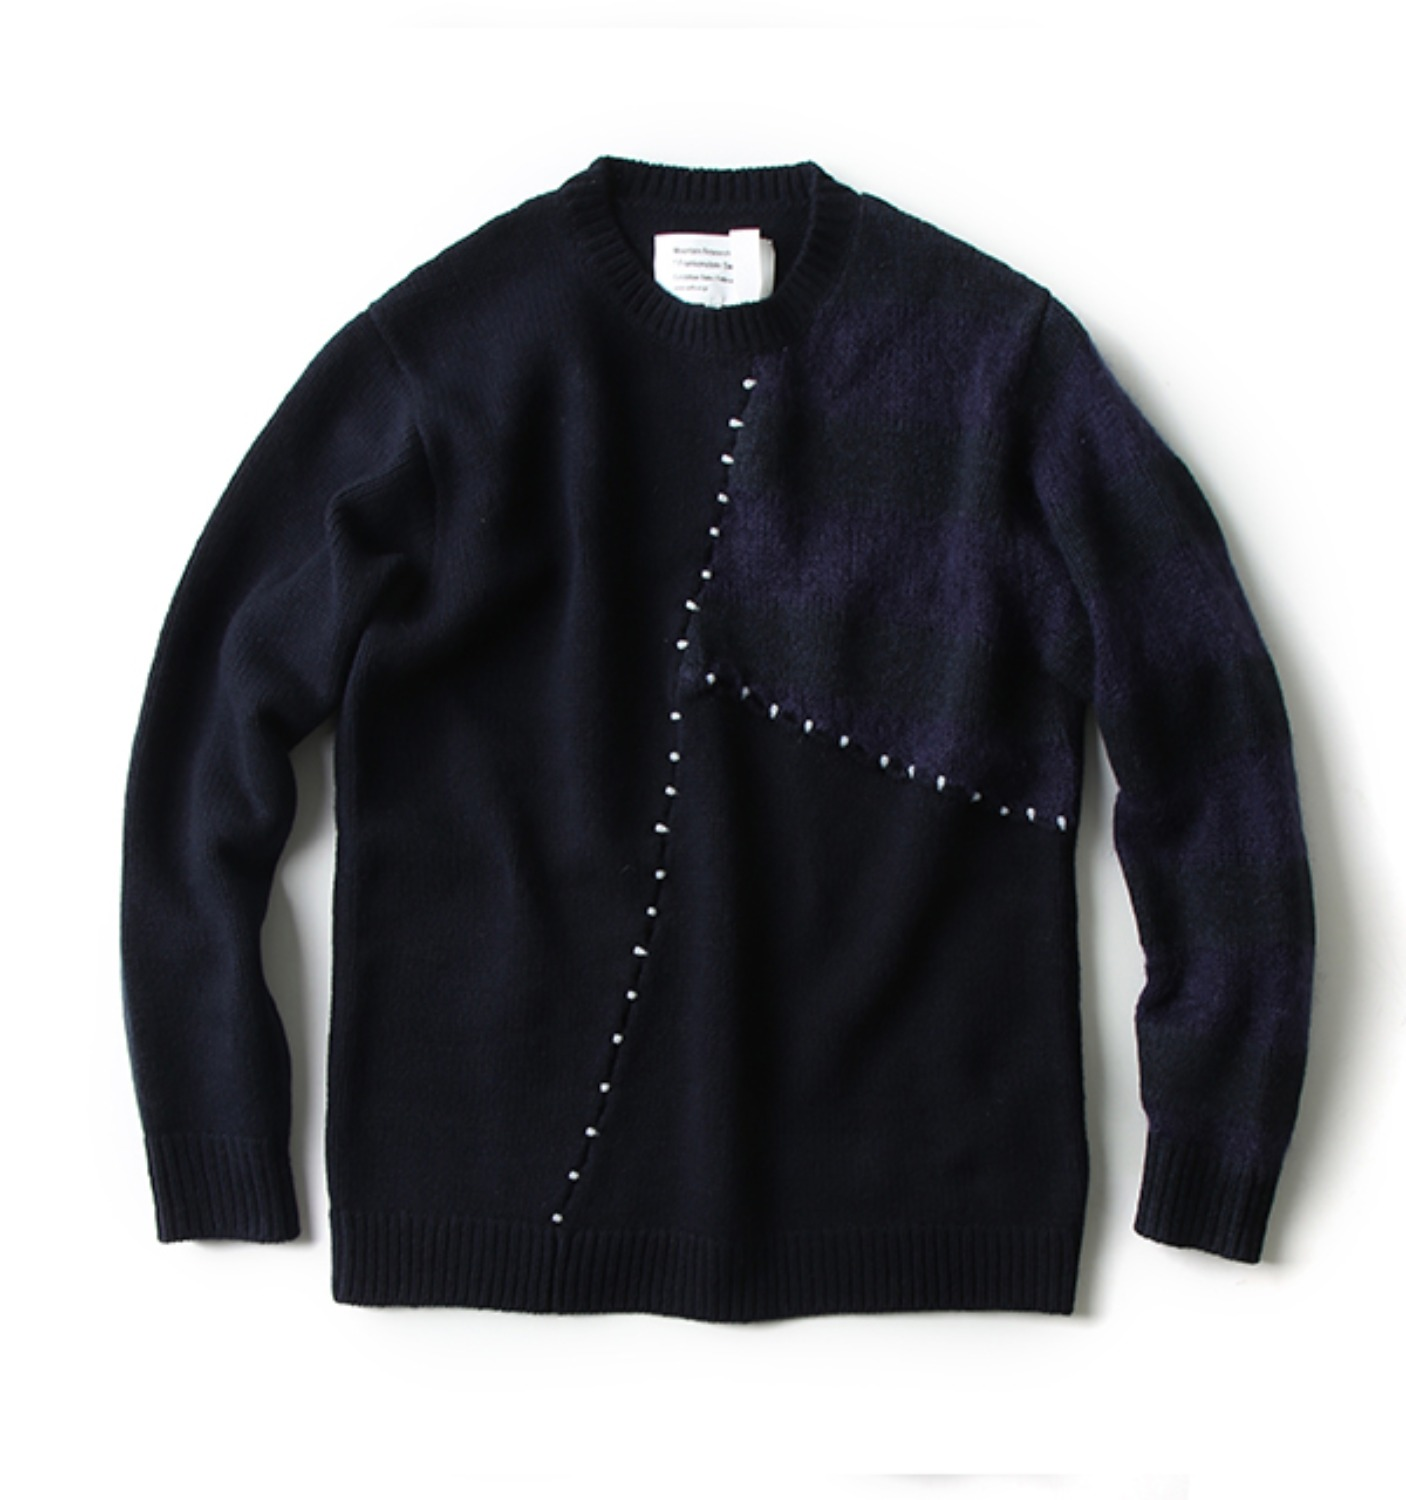 FRANKENSTEIN SWEATER(MTR-2331) NAVY